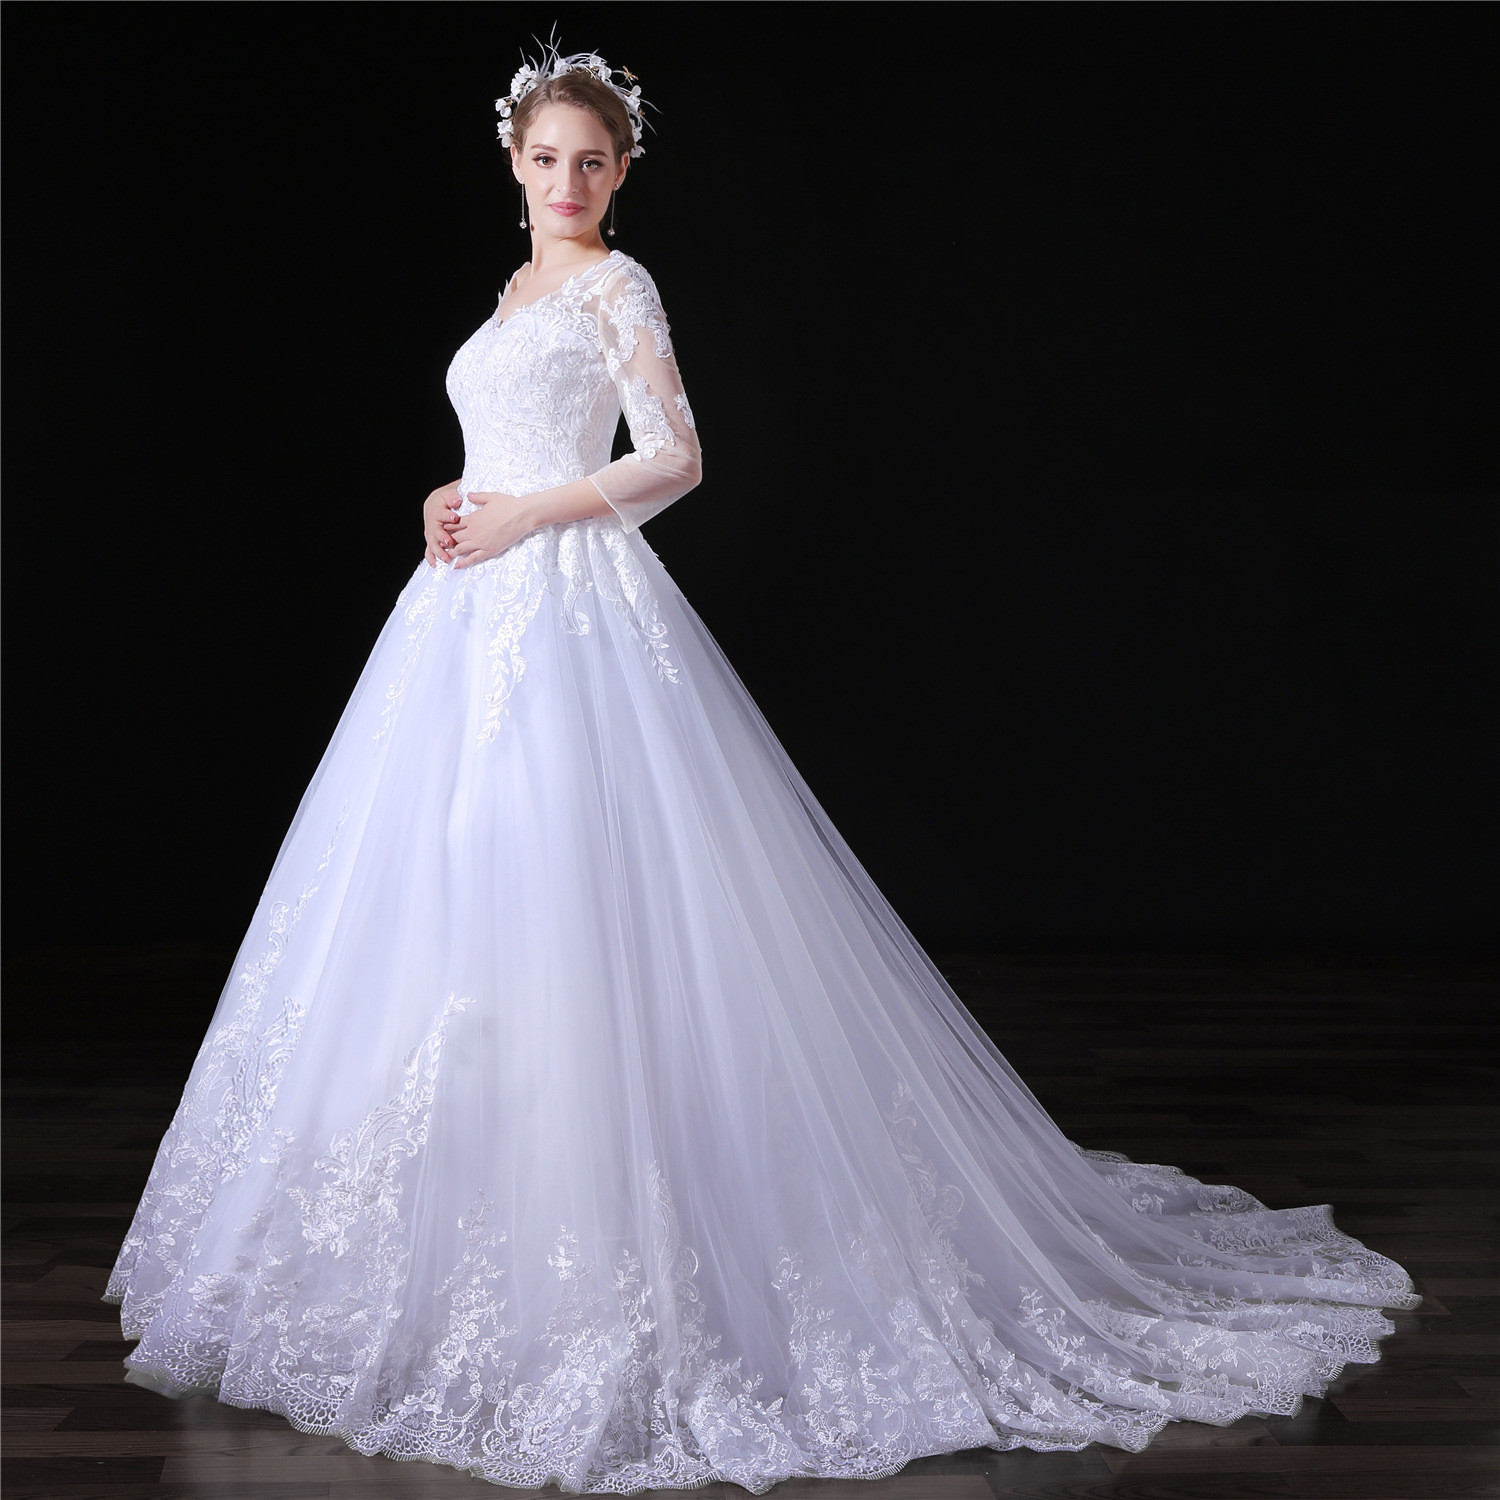 Lace Wedding Dress Plus Size A Line With Train Online For Sale